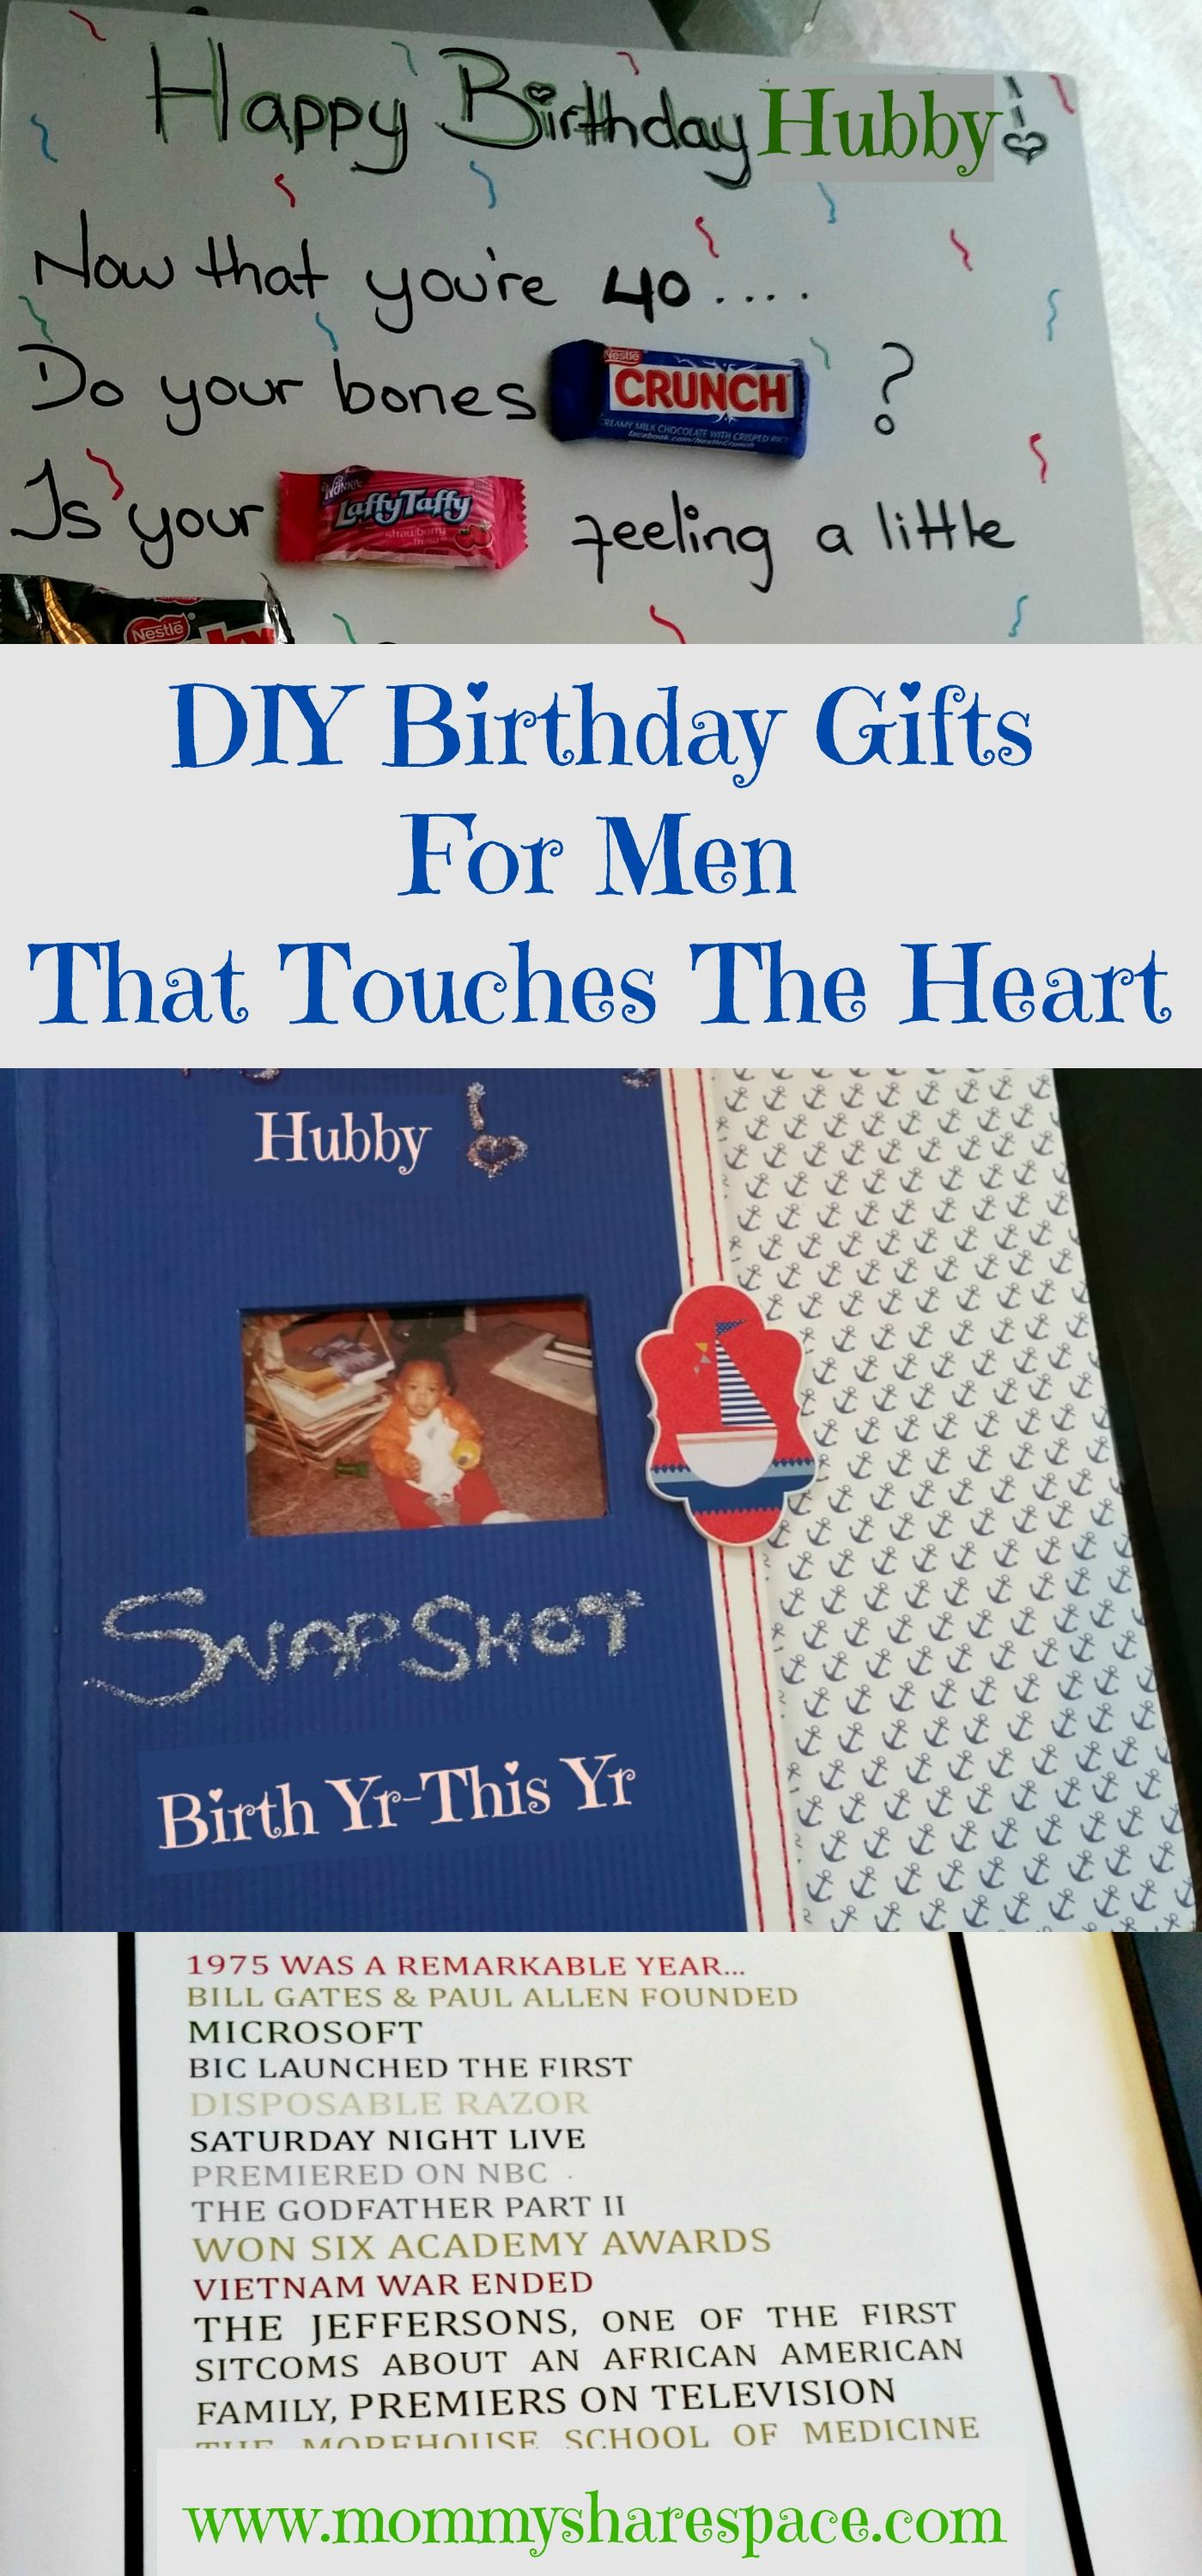 DIY Birthday Gifts For Men That Touches The Heart | DIY Birthday ...